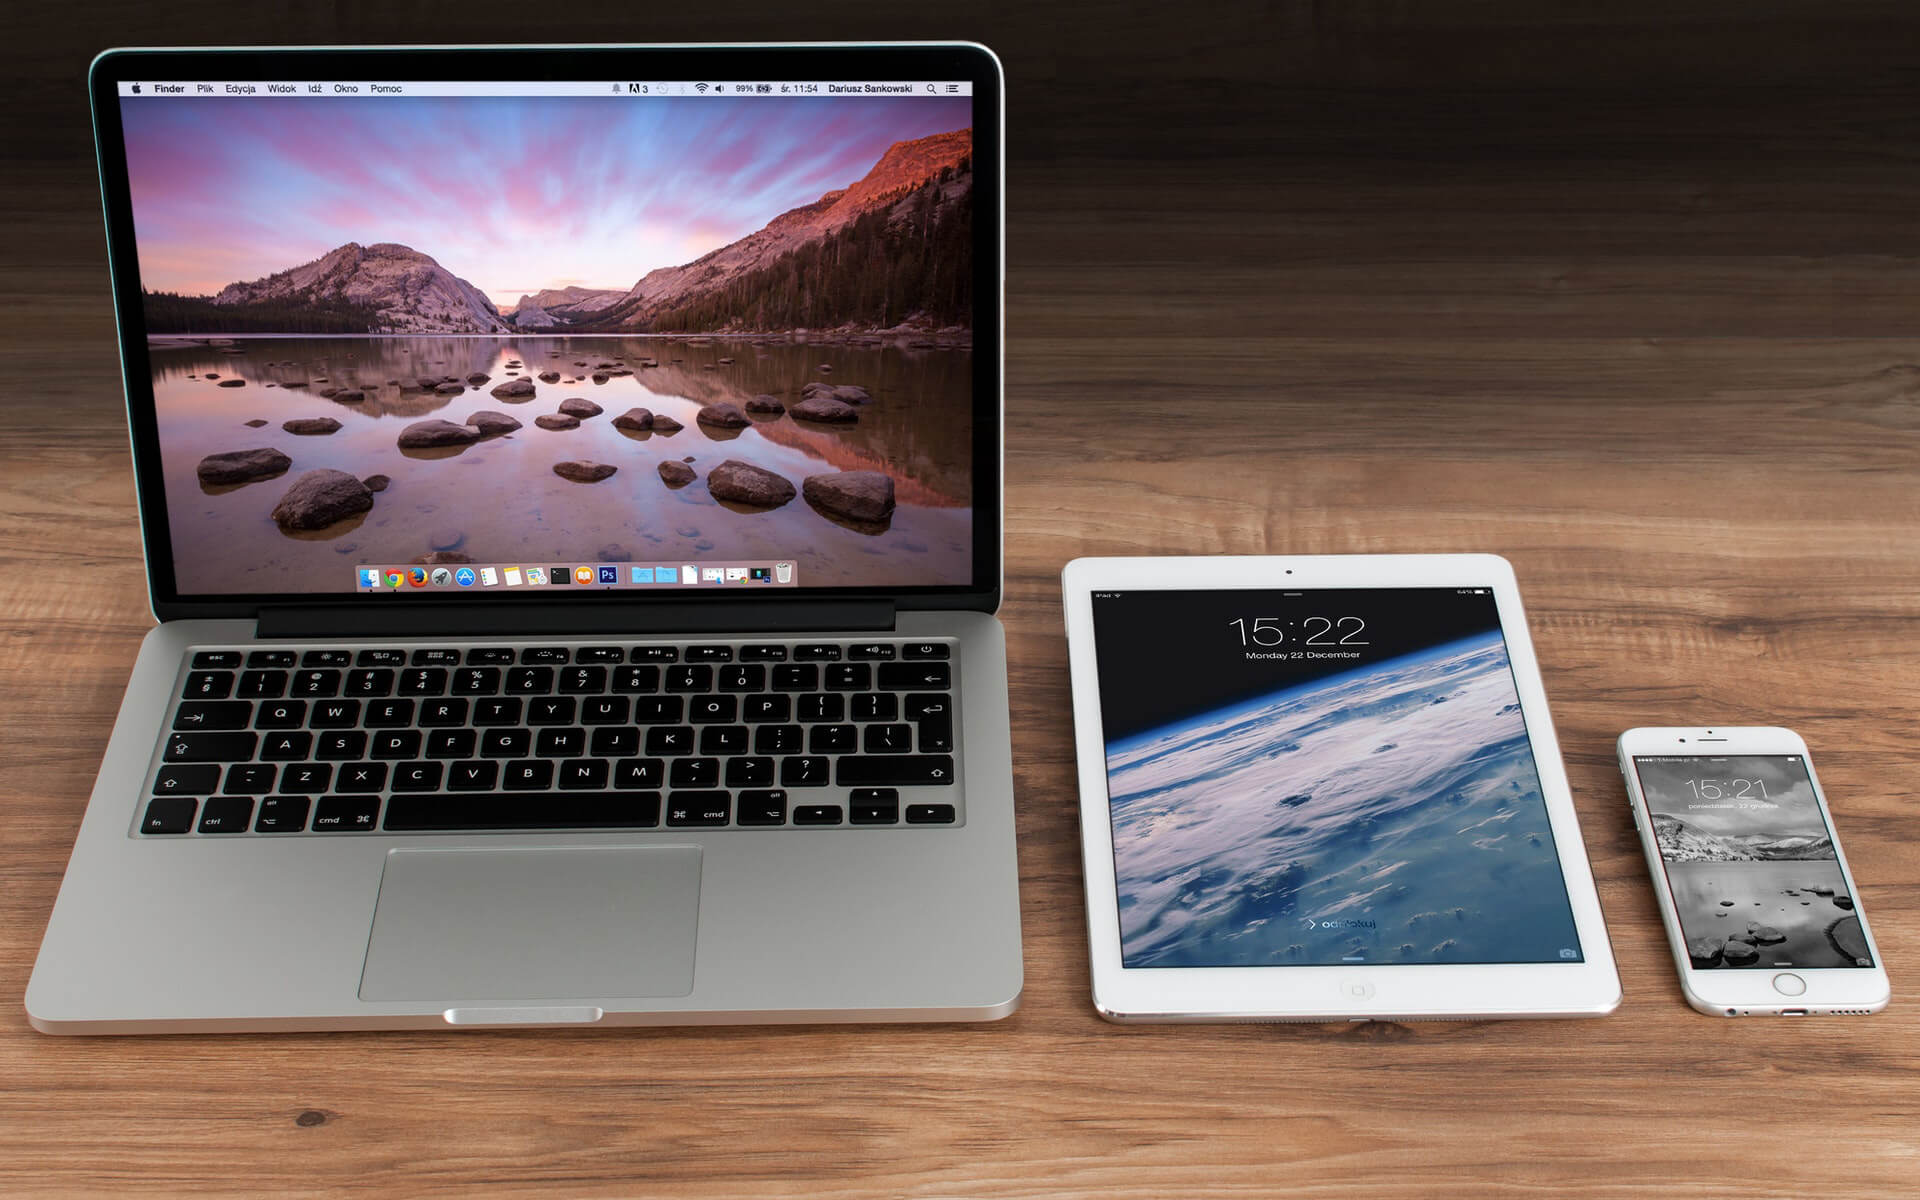 difference between screen size, resolution and display size